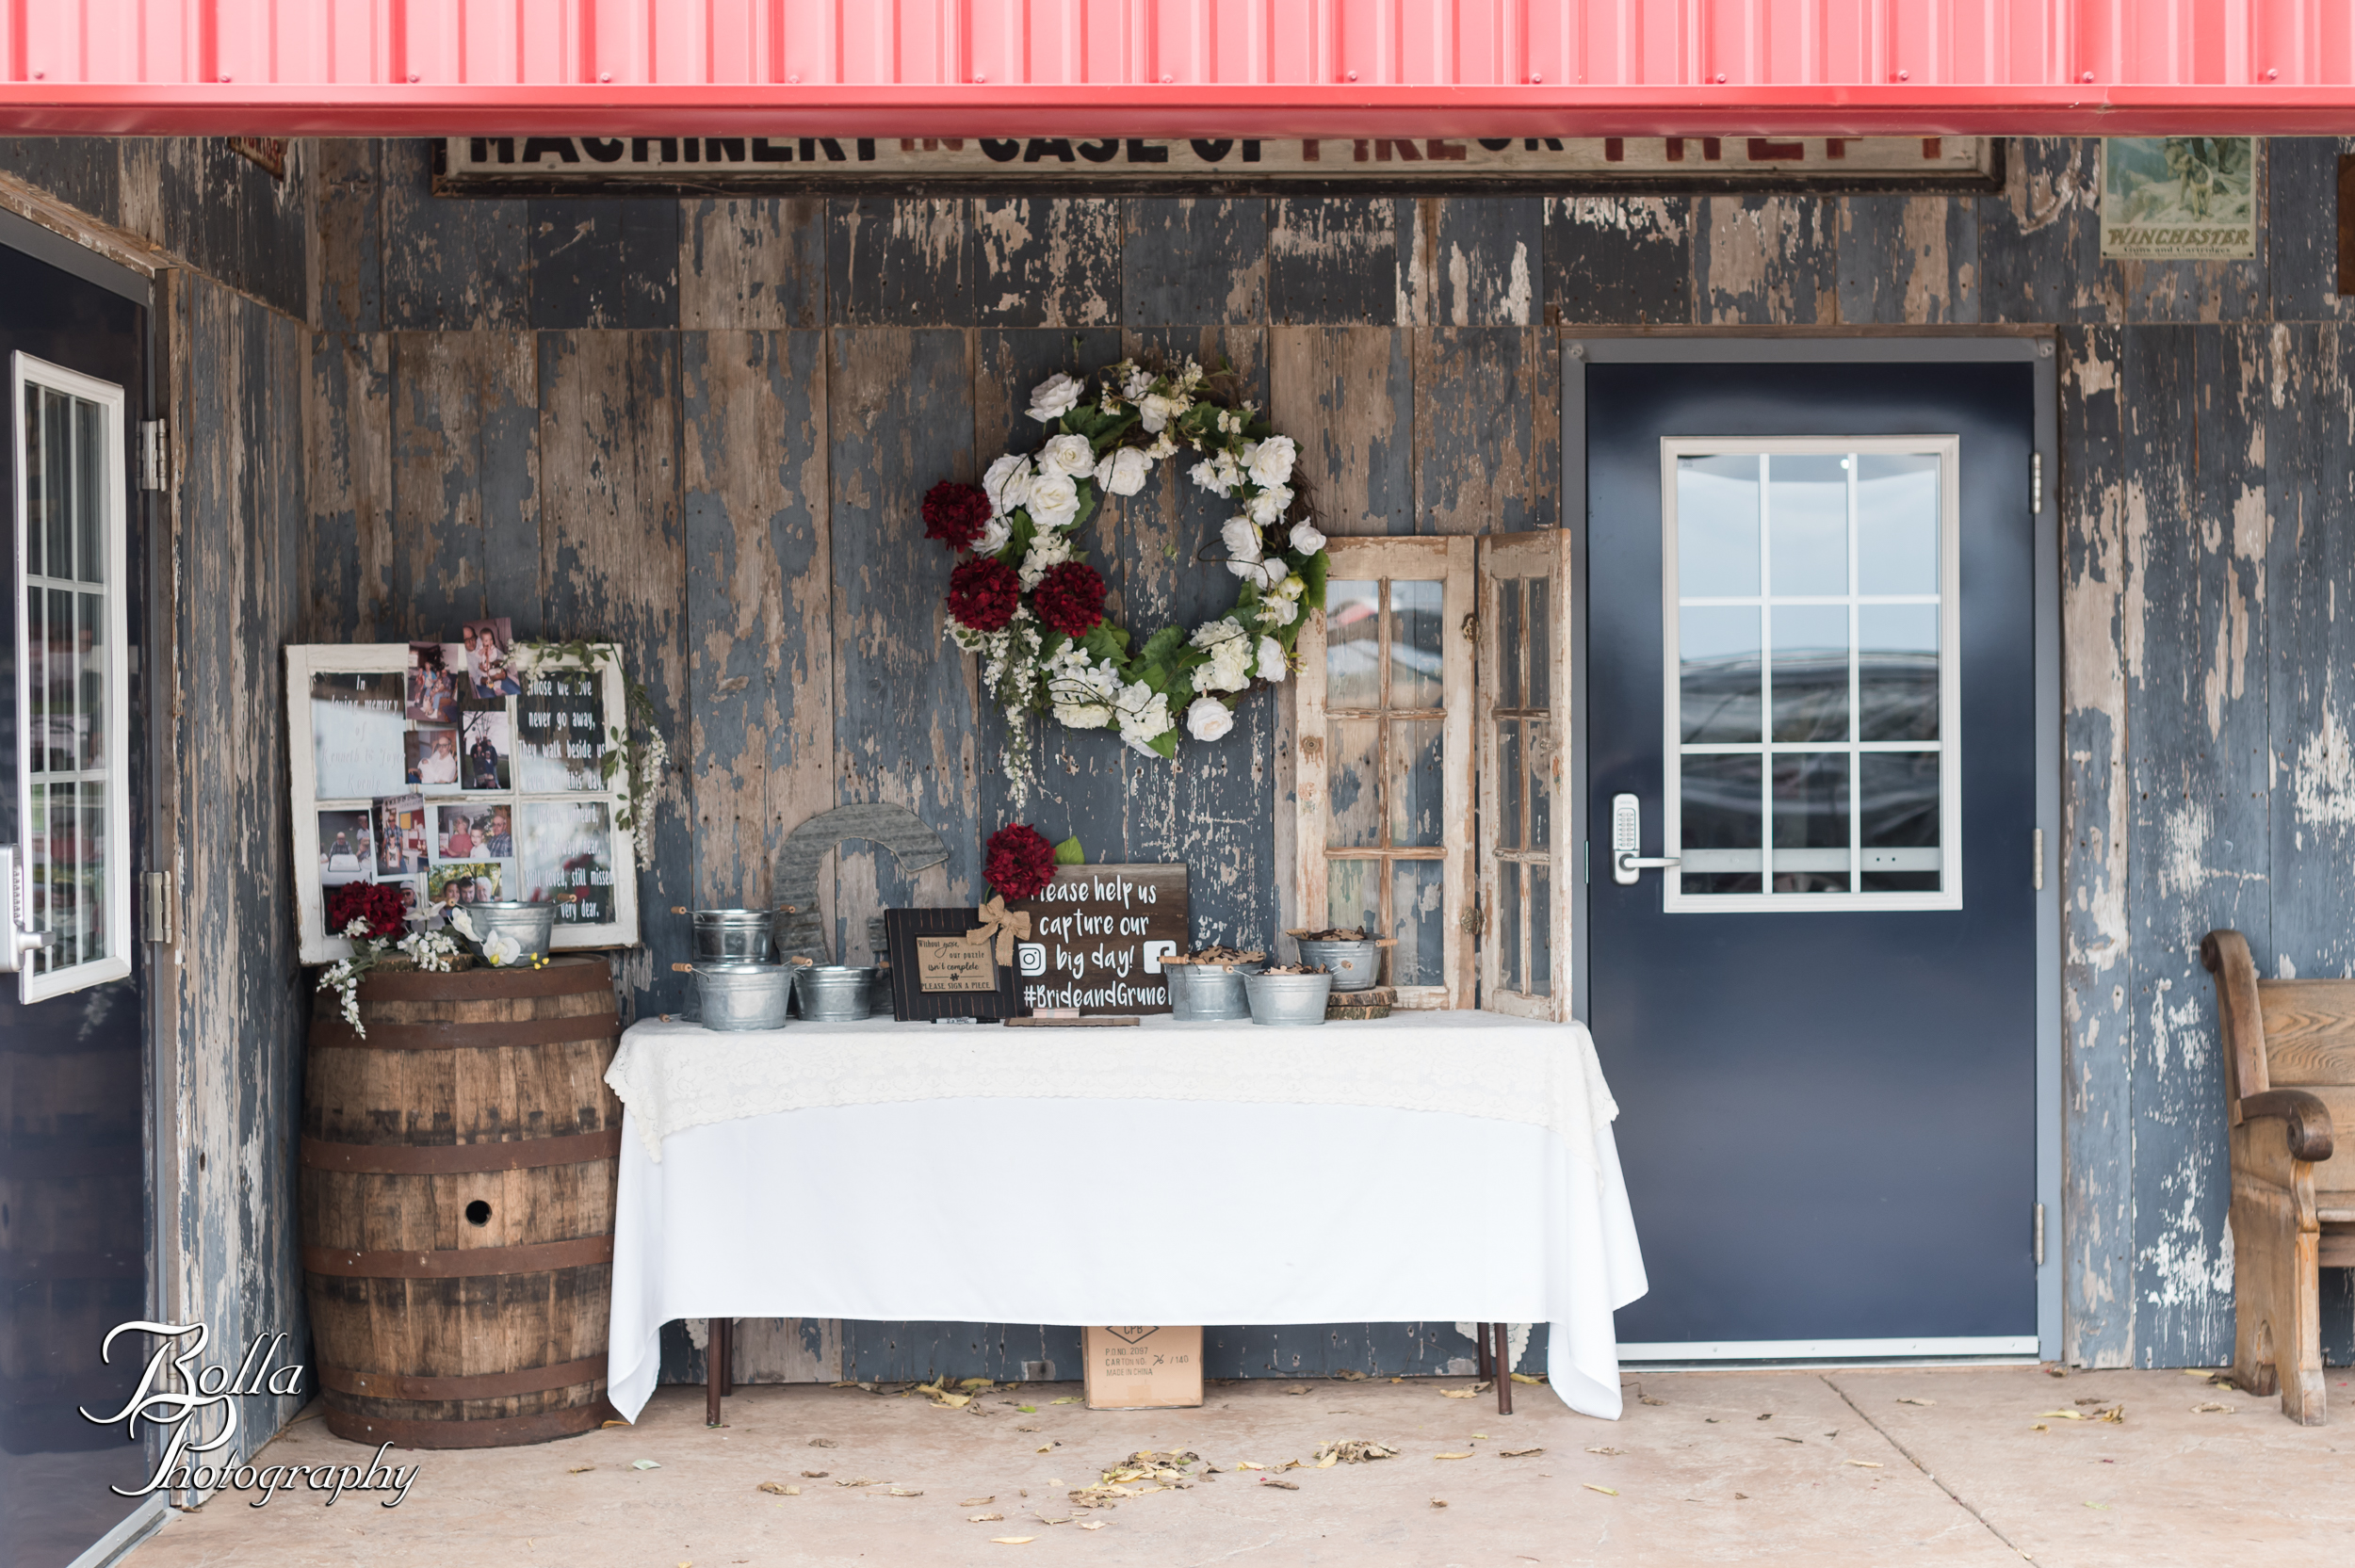 Bolla_photography_edwardsville_wedding_photographer_st_louis_weddings_Amber_Korsmeyer_Kyle_Gruner_Schwarz_Barn_blue_jeans_pickup_truck_autumn-0093.jpg